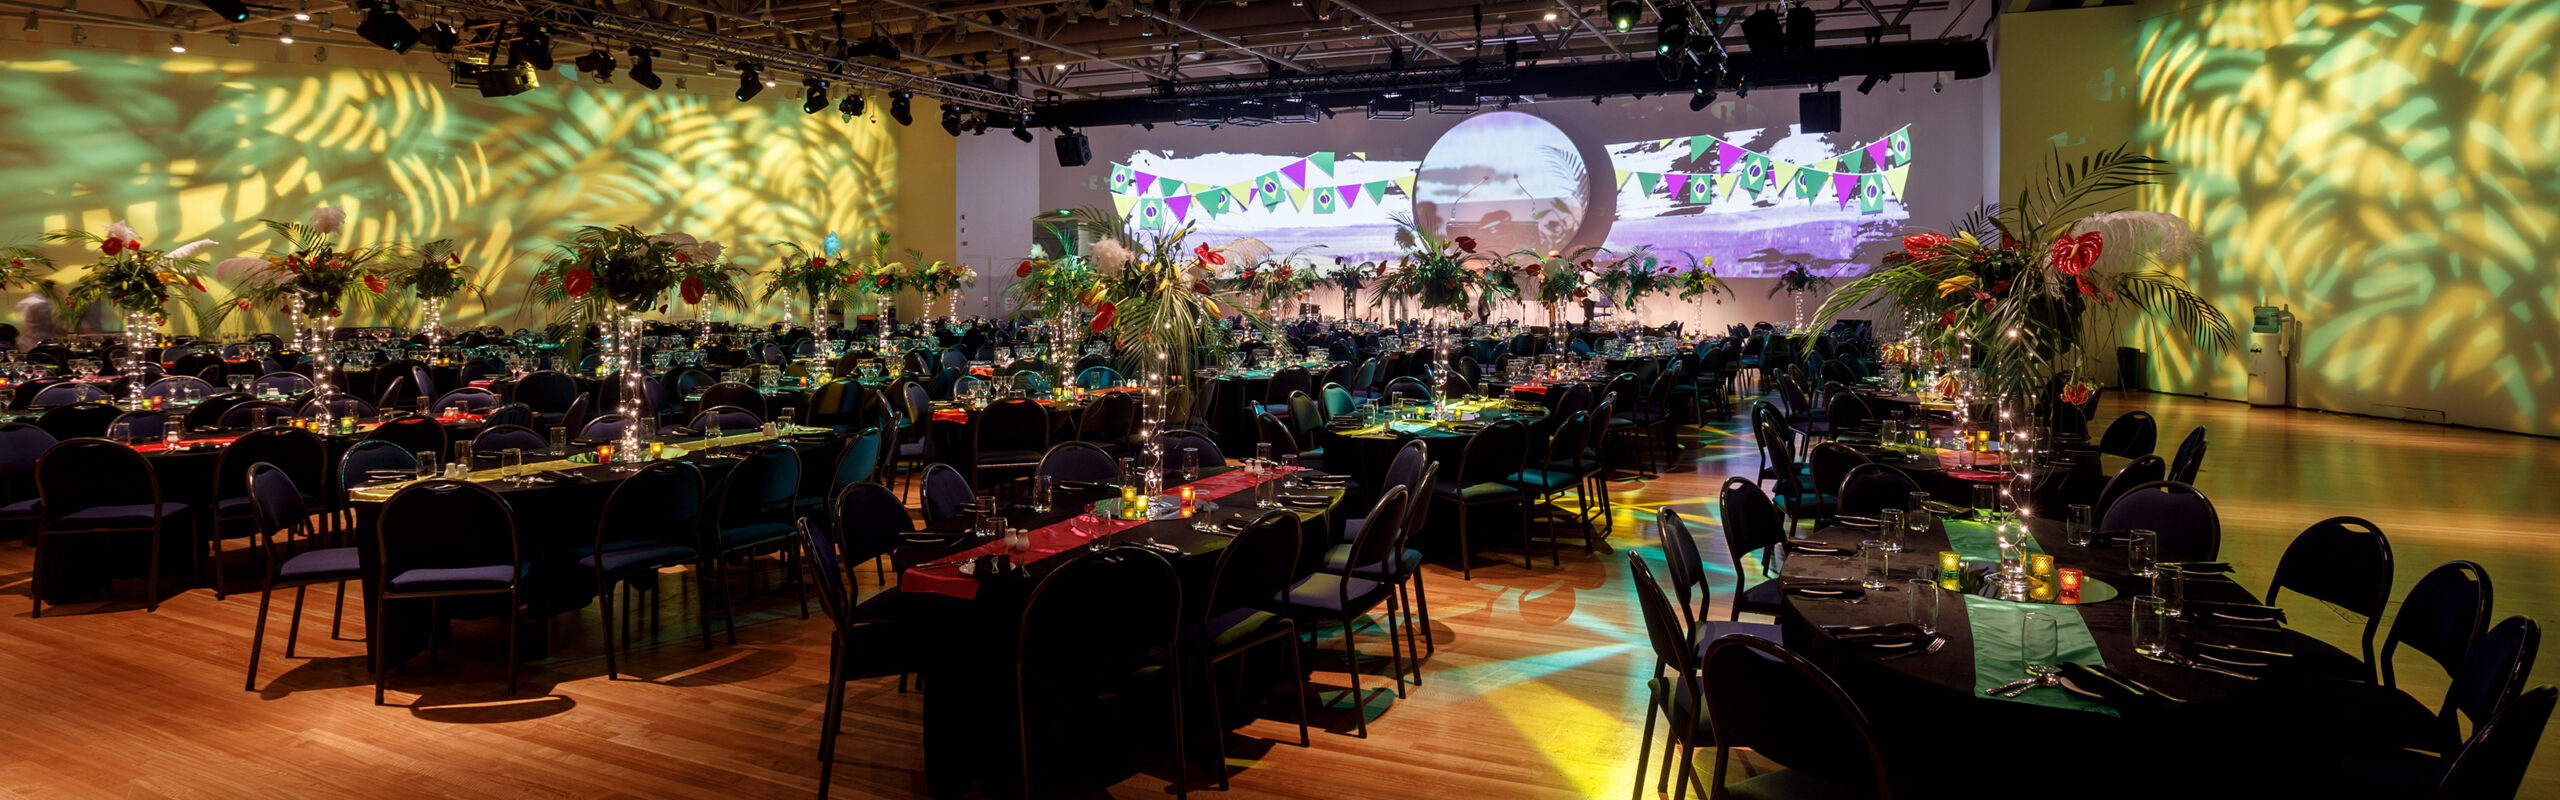 Cut the Mustard Gala Dinner // NZ International Education Conference and Expo 2018